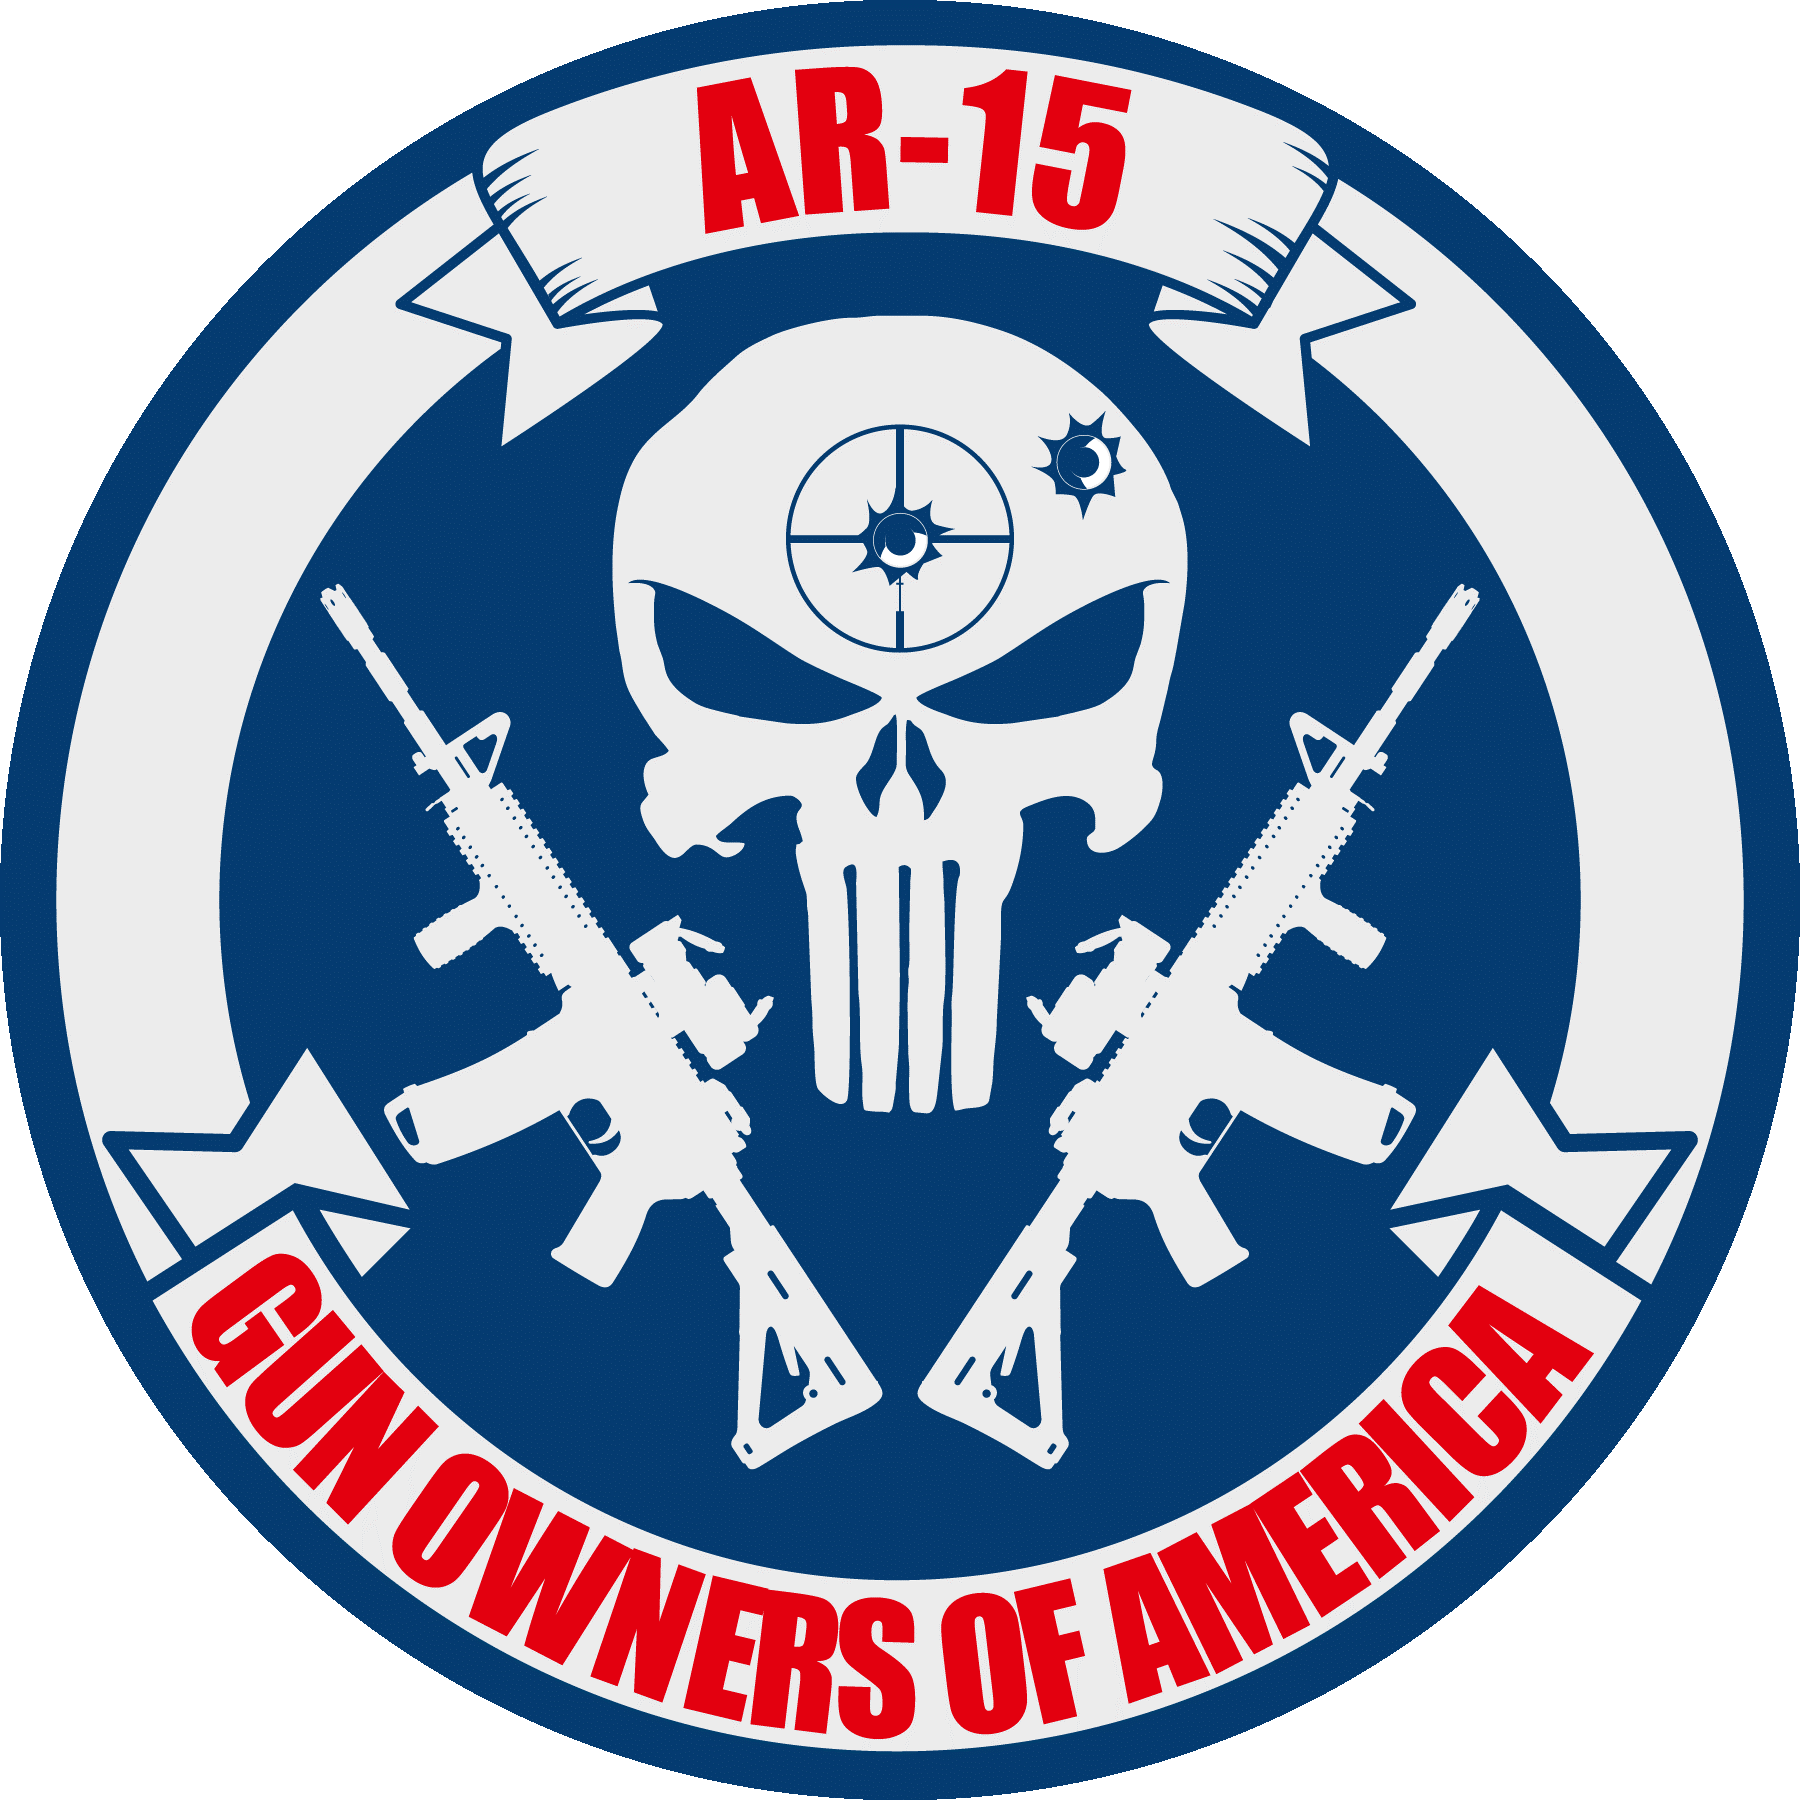 AR-15 GUN OWNERS OF AMERICA